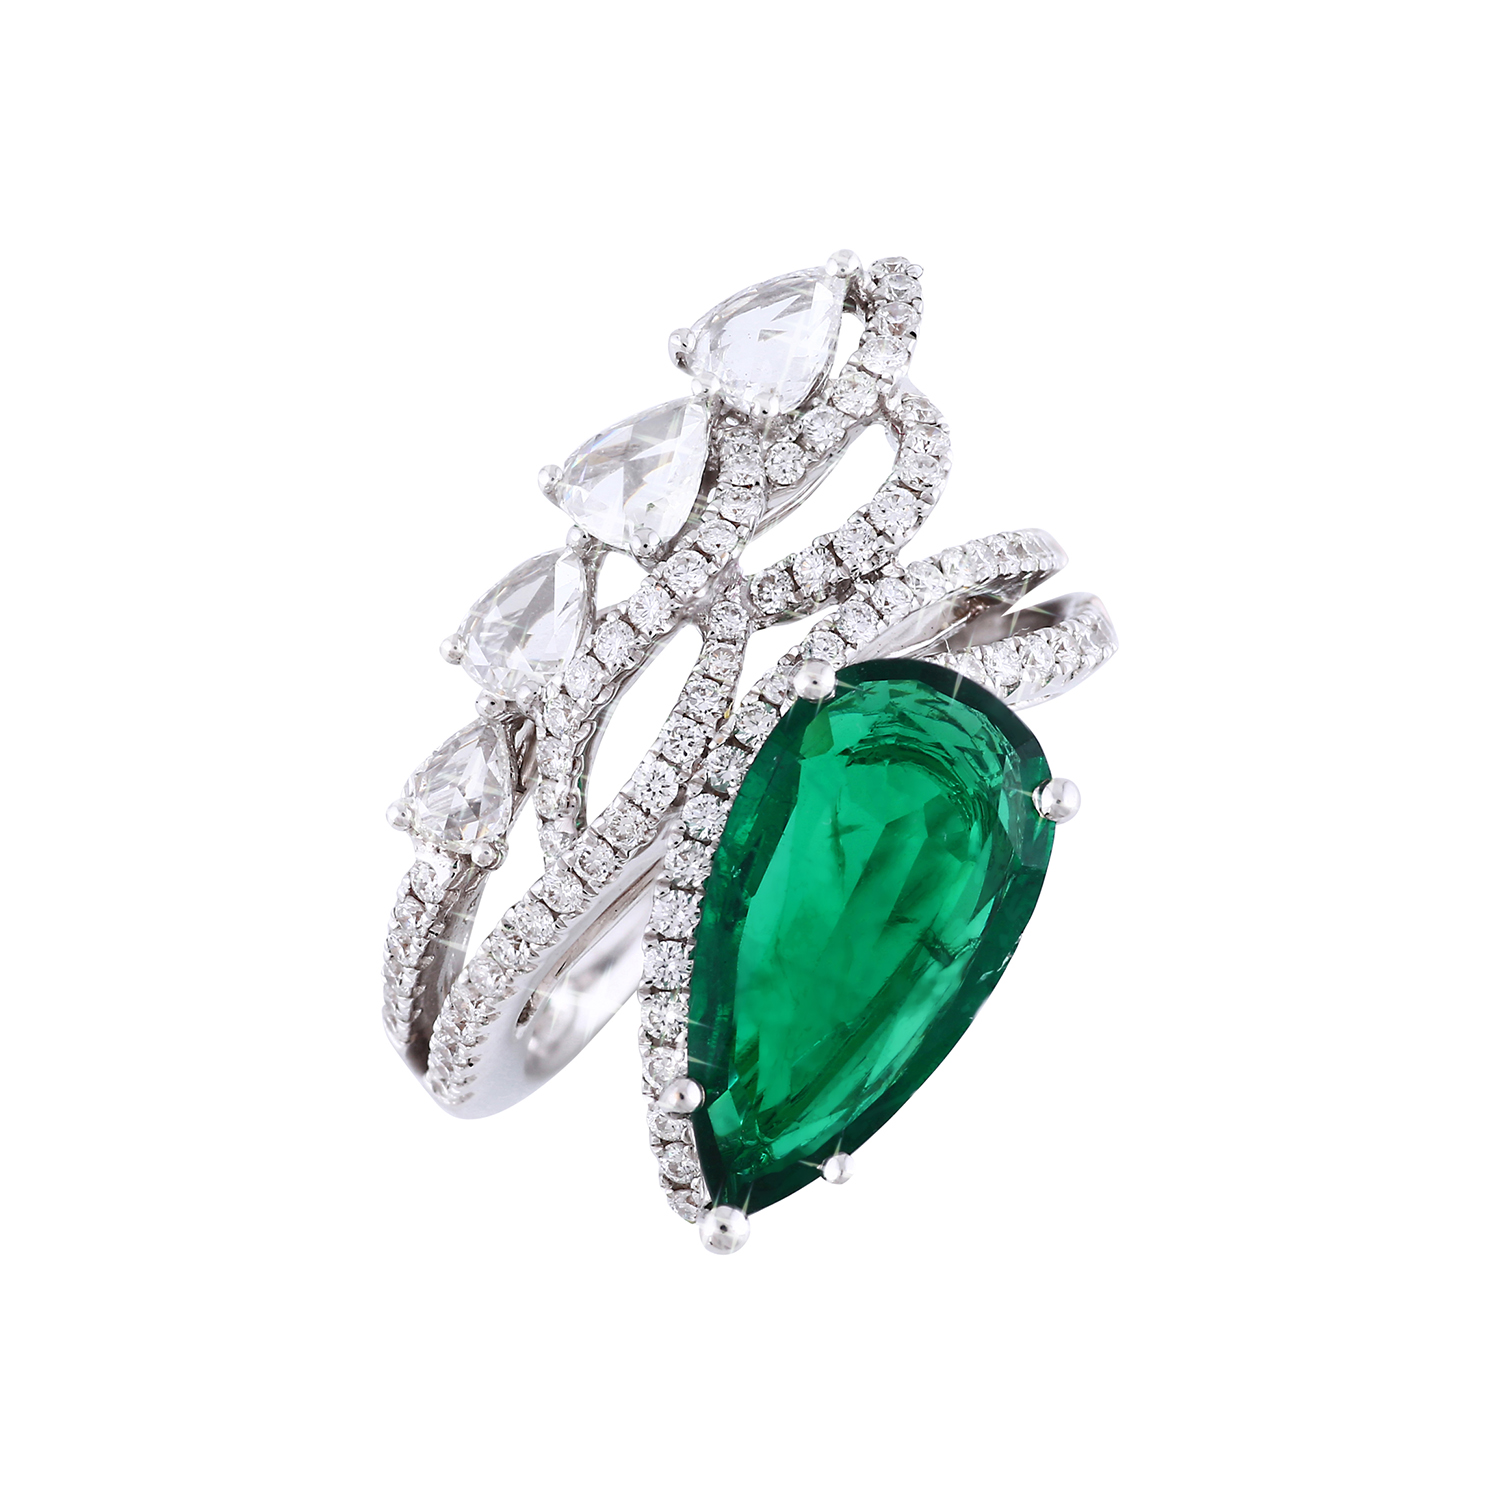 Bespoke Jewellery Singapore Exotic Gems & Jewellery Pte Ltd Emerald Diamond Ring